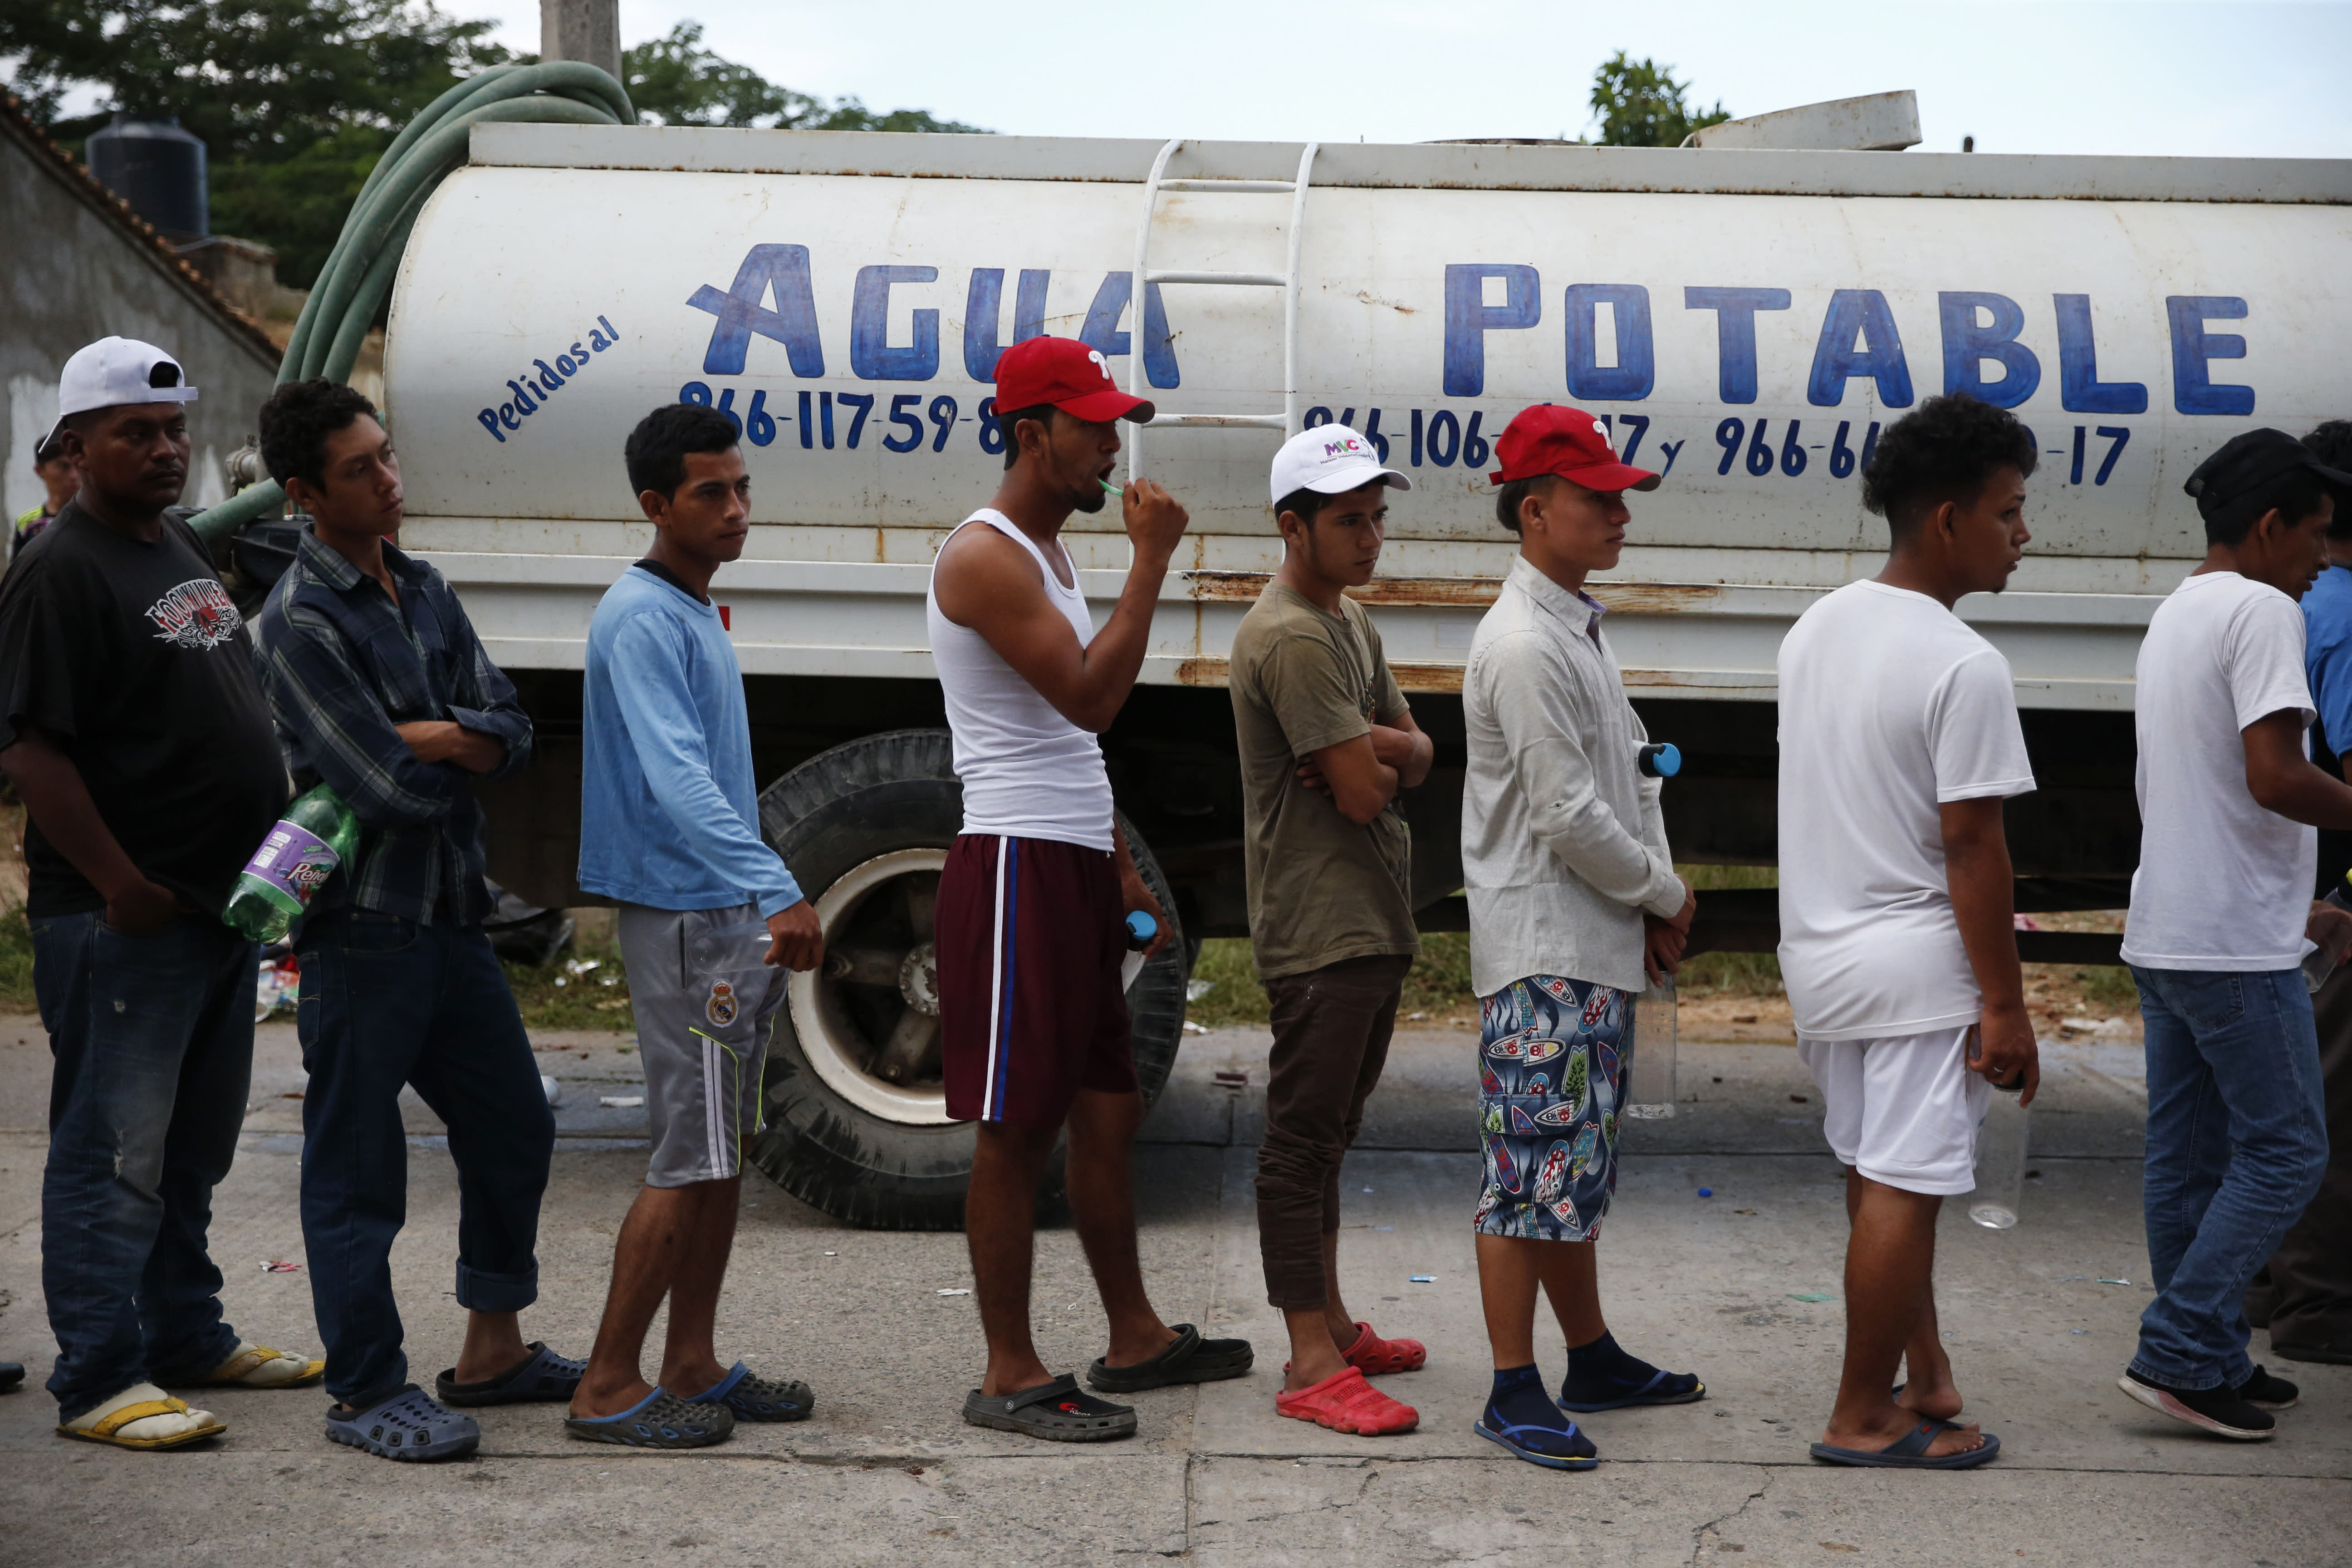 Migrants wait in line beside a water truck to brush their teeth and fill water bottles, as a caravan of Central Americans trying to reach the U.S. border halts for a rest day in San Pedro Tapanatepec, Oaxaca state, Mexico, Sunday, Oct. 28, 2018. Thousands of migrants took a break Sunday on their long journey toward the U.S. border roughly 1000 miles away, with Mexican government agencies seeming to waver between helping and hindering.(AP Photo/Rebecca Blackwell)